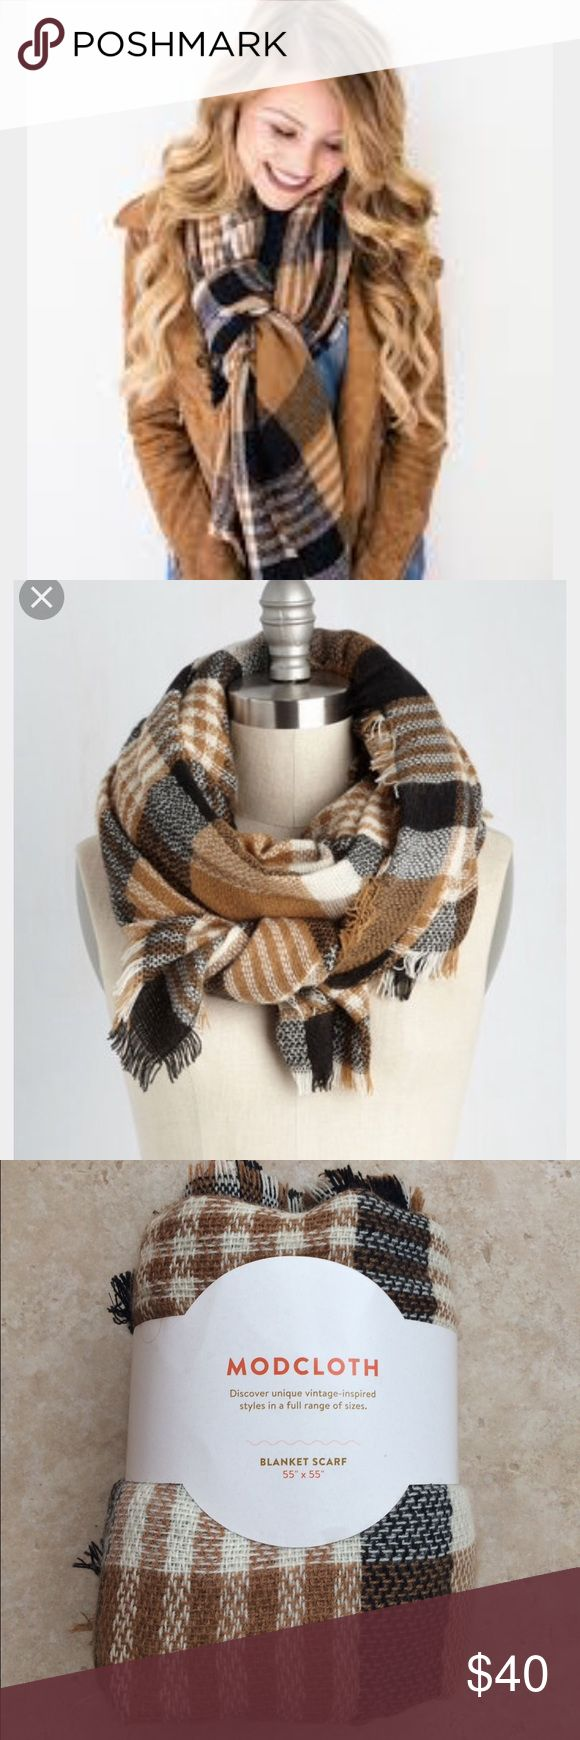 Modcloth Scarf Modcloth Loch and Key Scarf. Soft. This scarf is black, tan,cream. ModCloth Accessories Scarves & Wraps